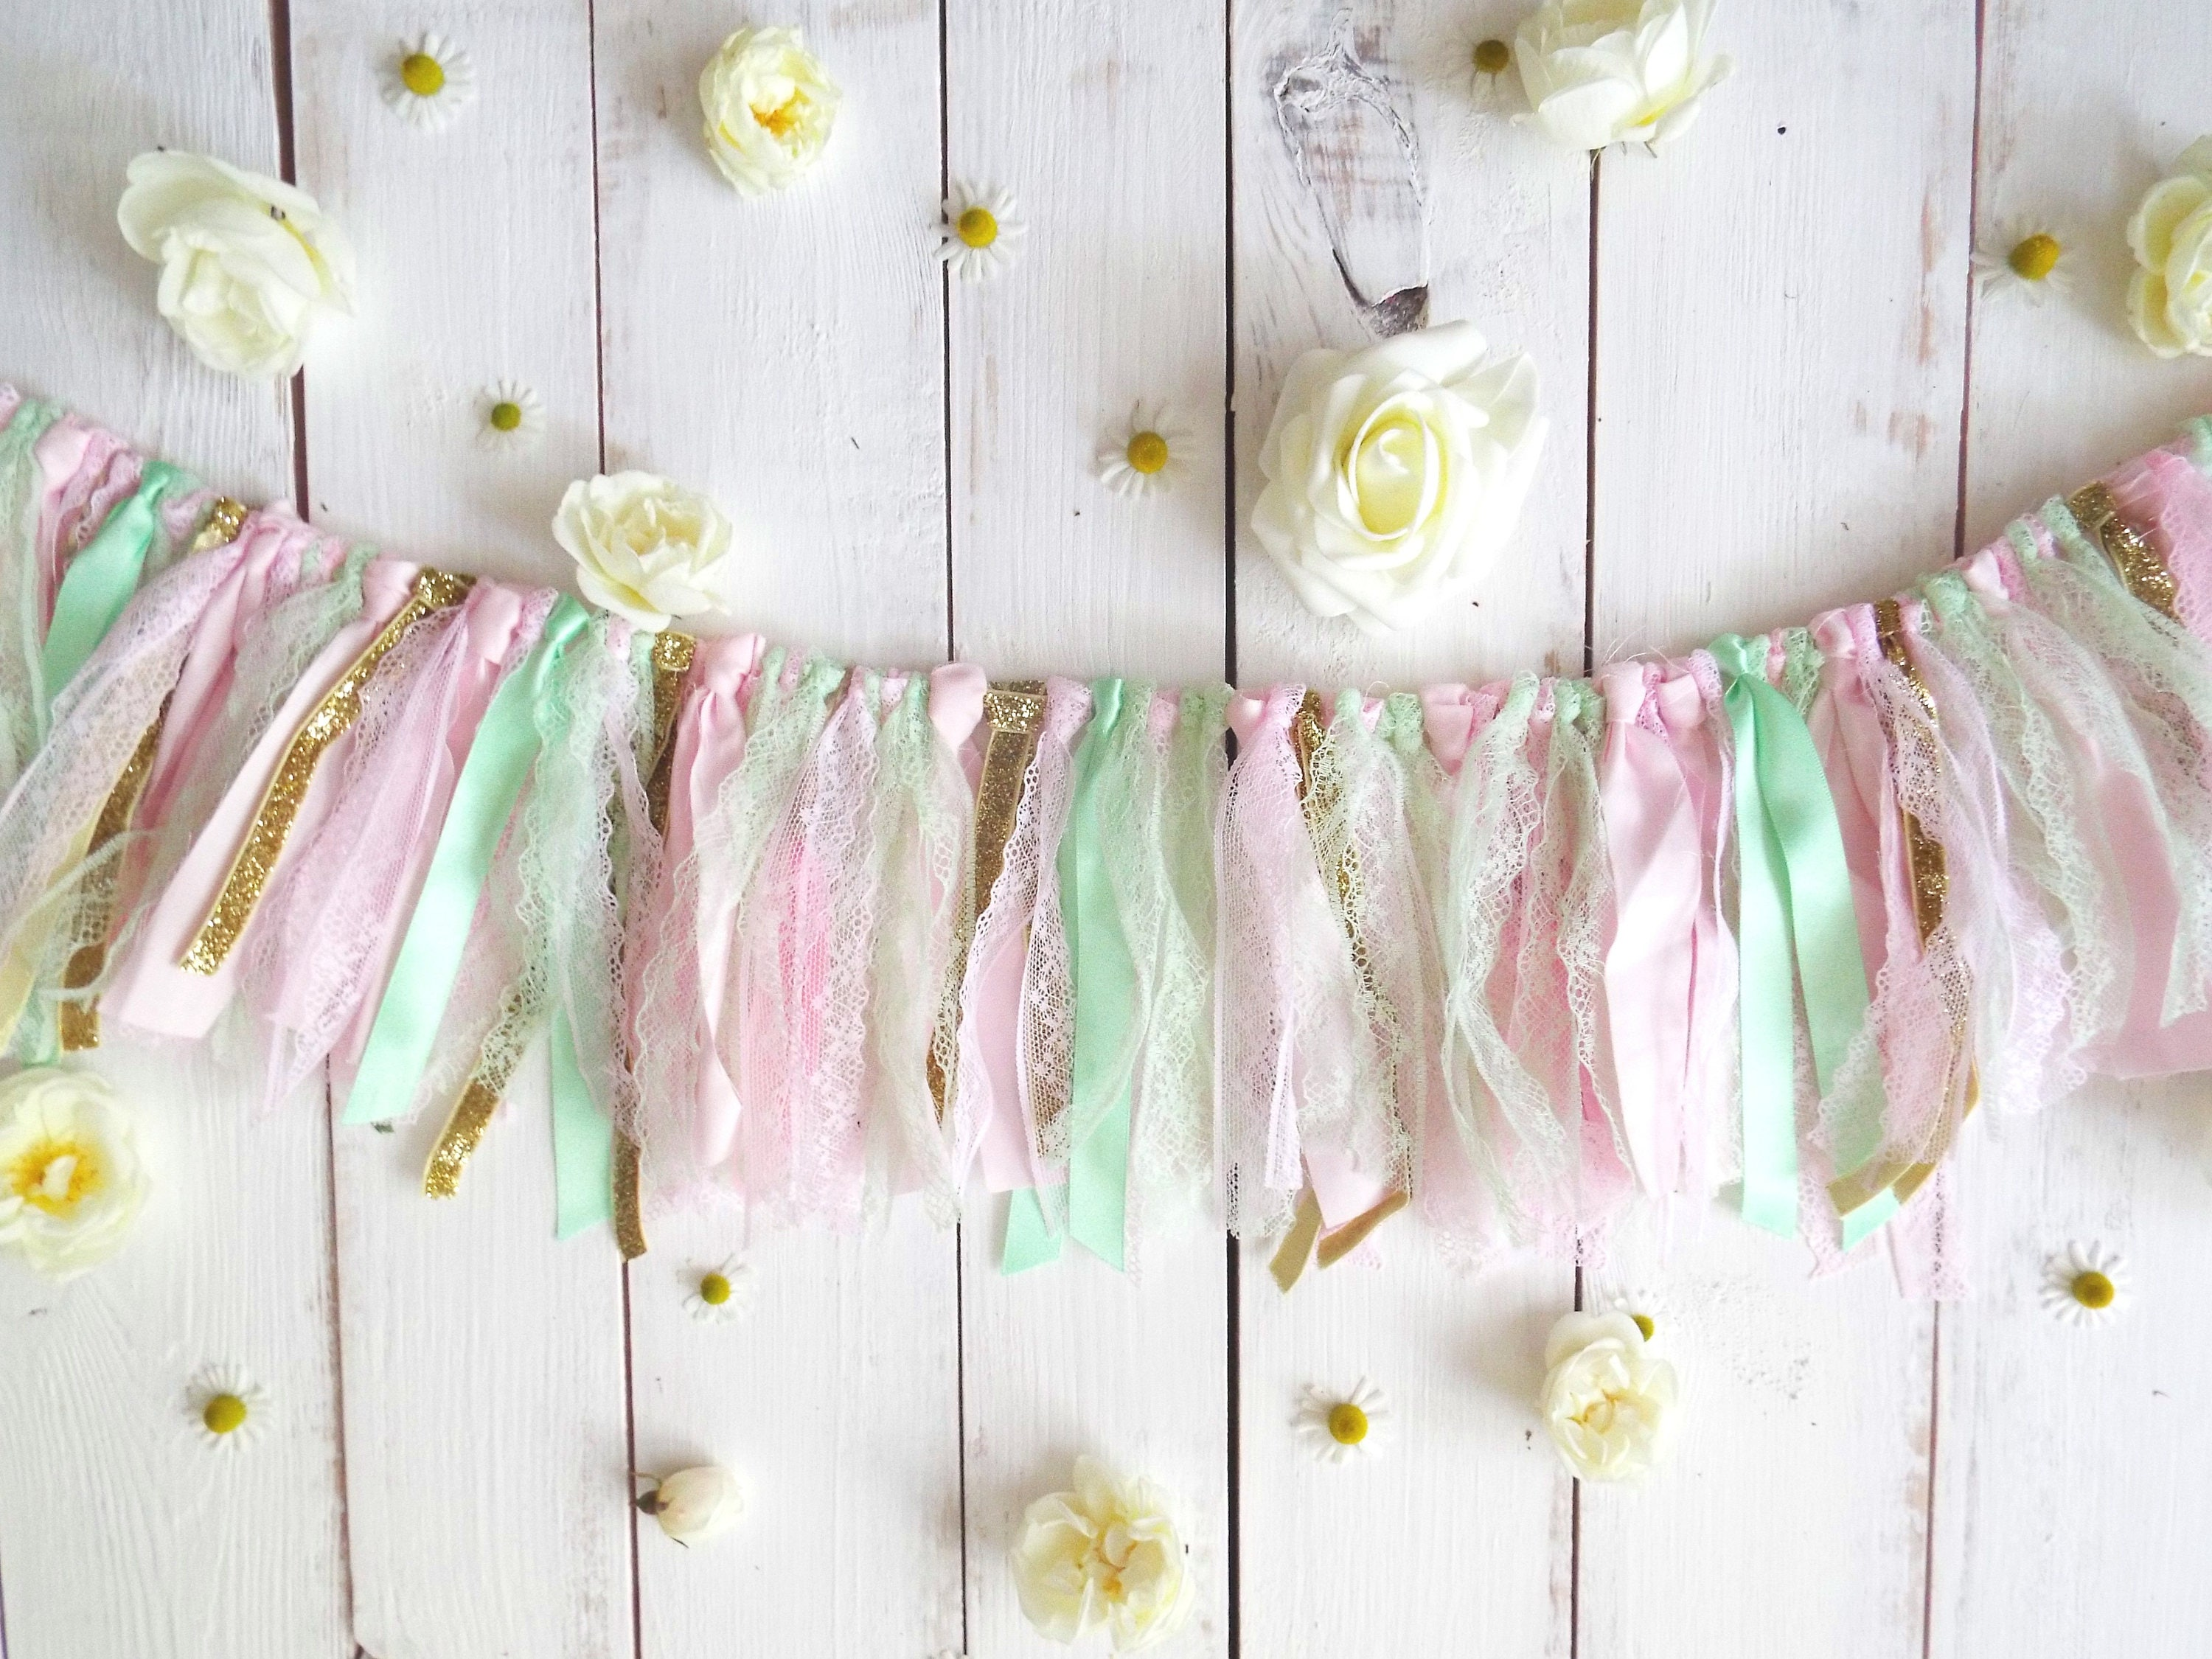 Garland pastel green lace pink glitter gold shabby chic banner ...